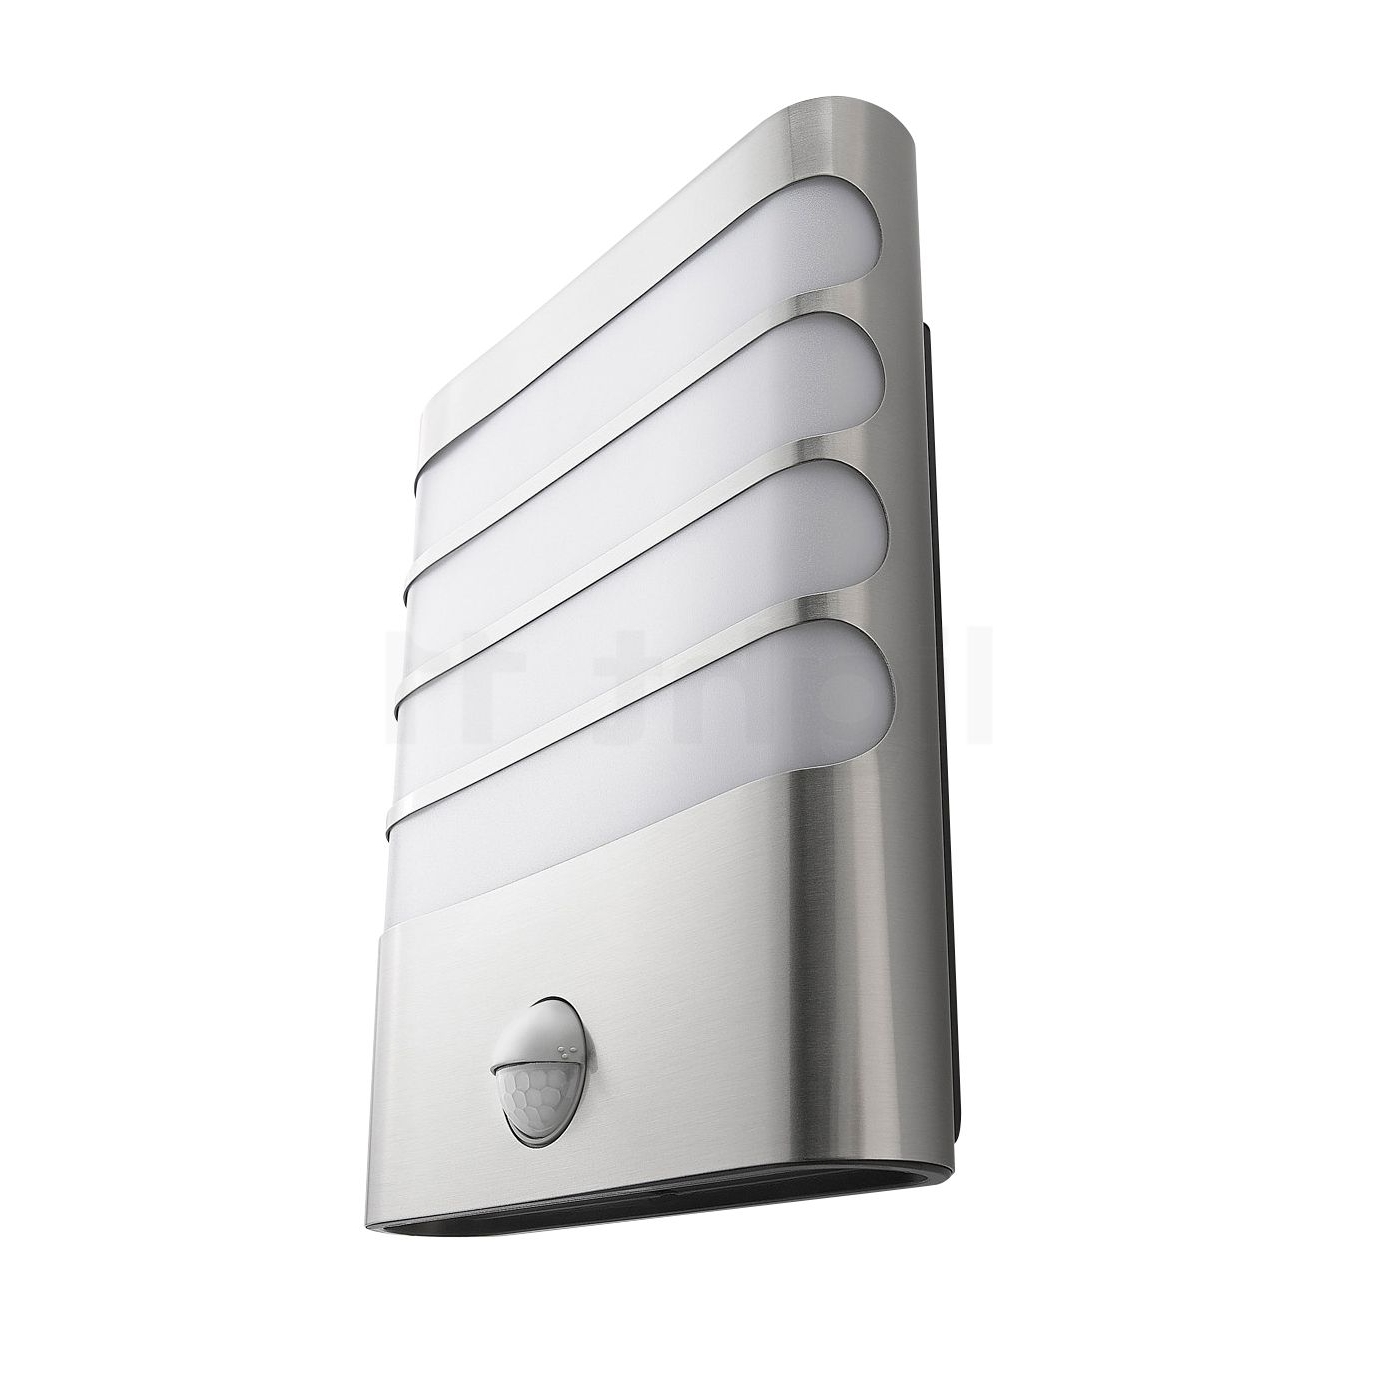 Philips Mygarden Raccoon 17274 Wall Light With Motion Detector Led Intended For Newest Led Outdoor Raccoon Wall Lights With Motion Detector (View 15 of 20)